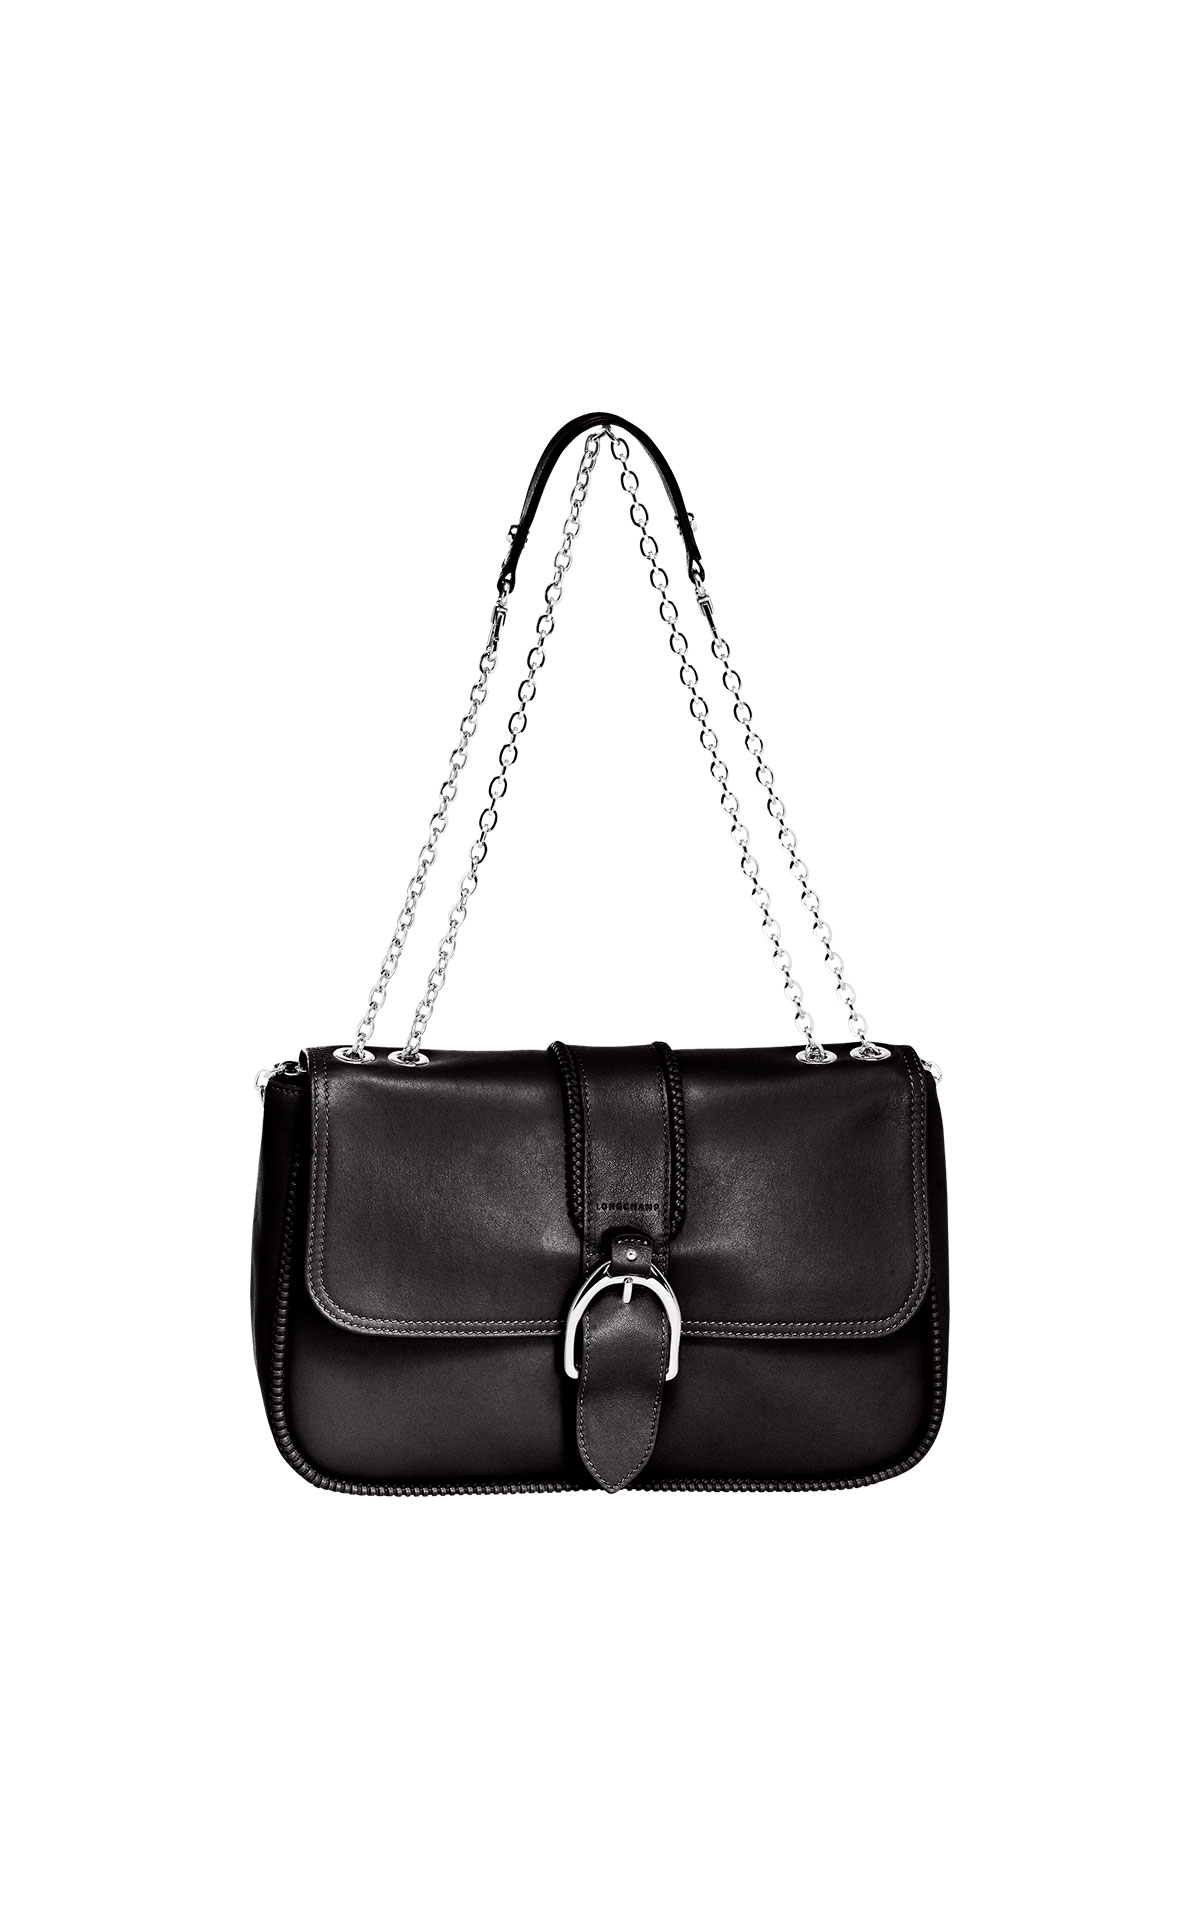 Black Amazone bag Longchamp